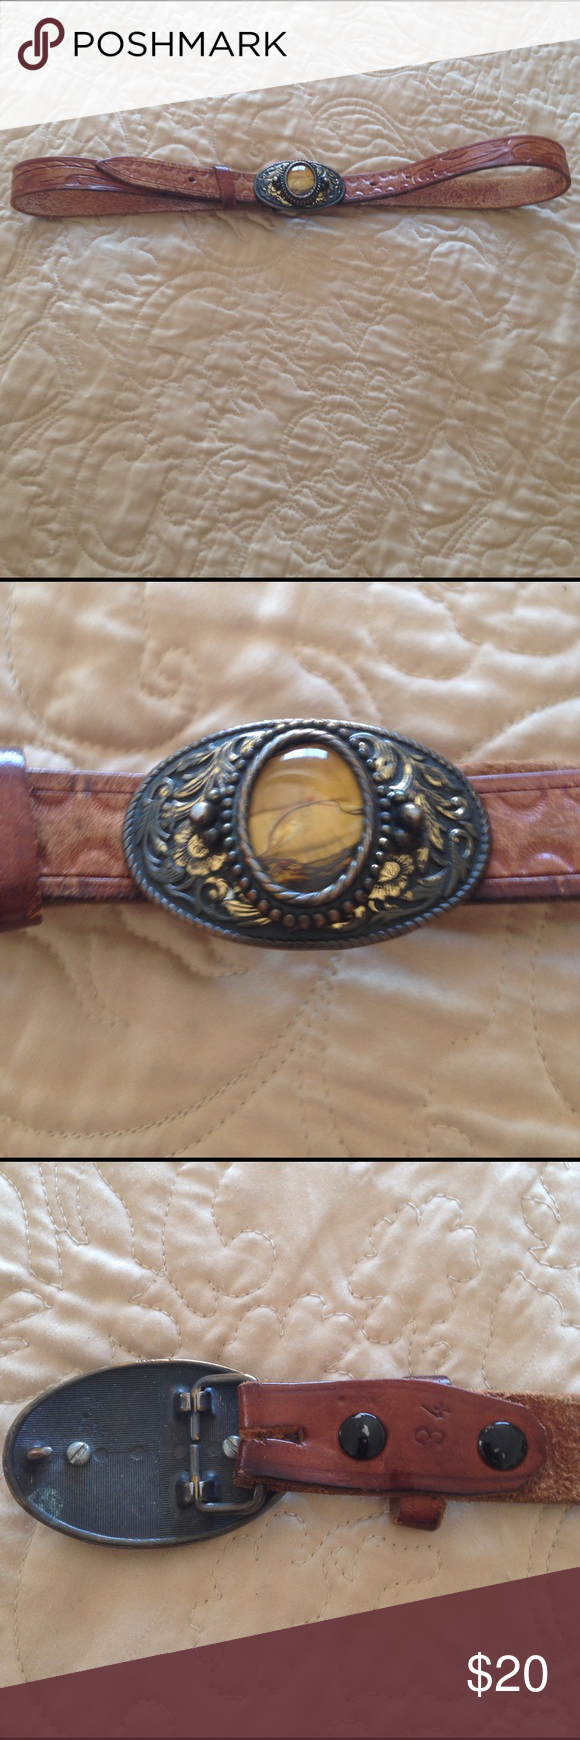 Vintage western boho belt Beautiful vintage belt leather tool the buckle is metal with a really pretty agate stone in the middle of it definitely old in good shape would be perfect for jeans or a really cute dress really cool statement piece measures 36 inches long the belt is stamped that says 34 Accessories Belts